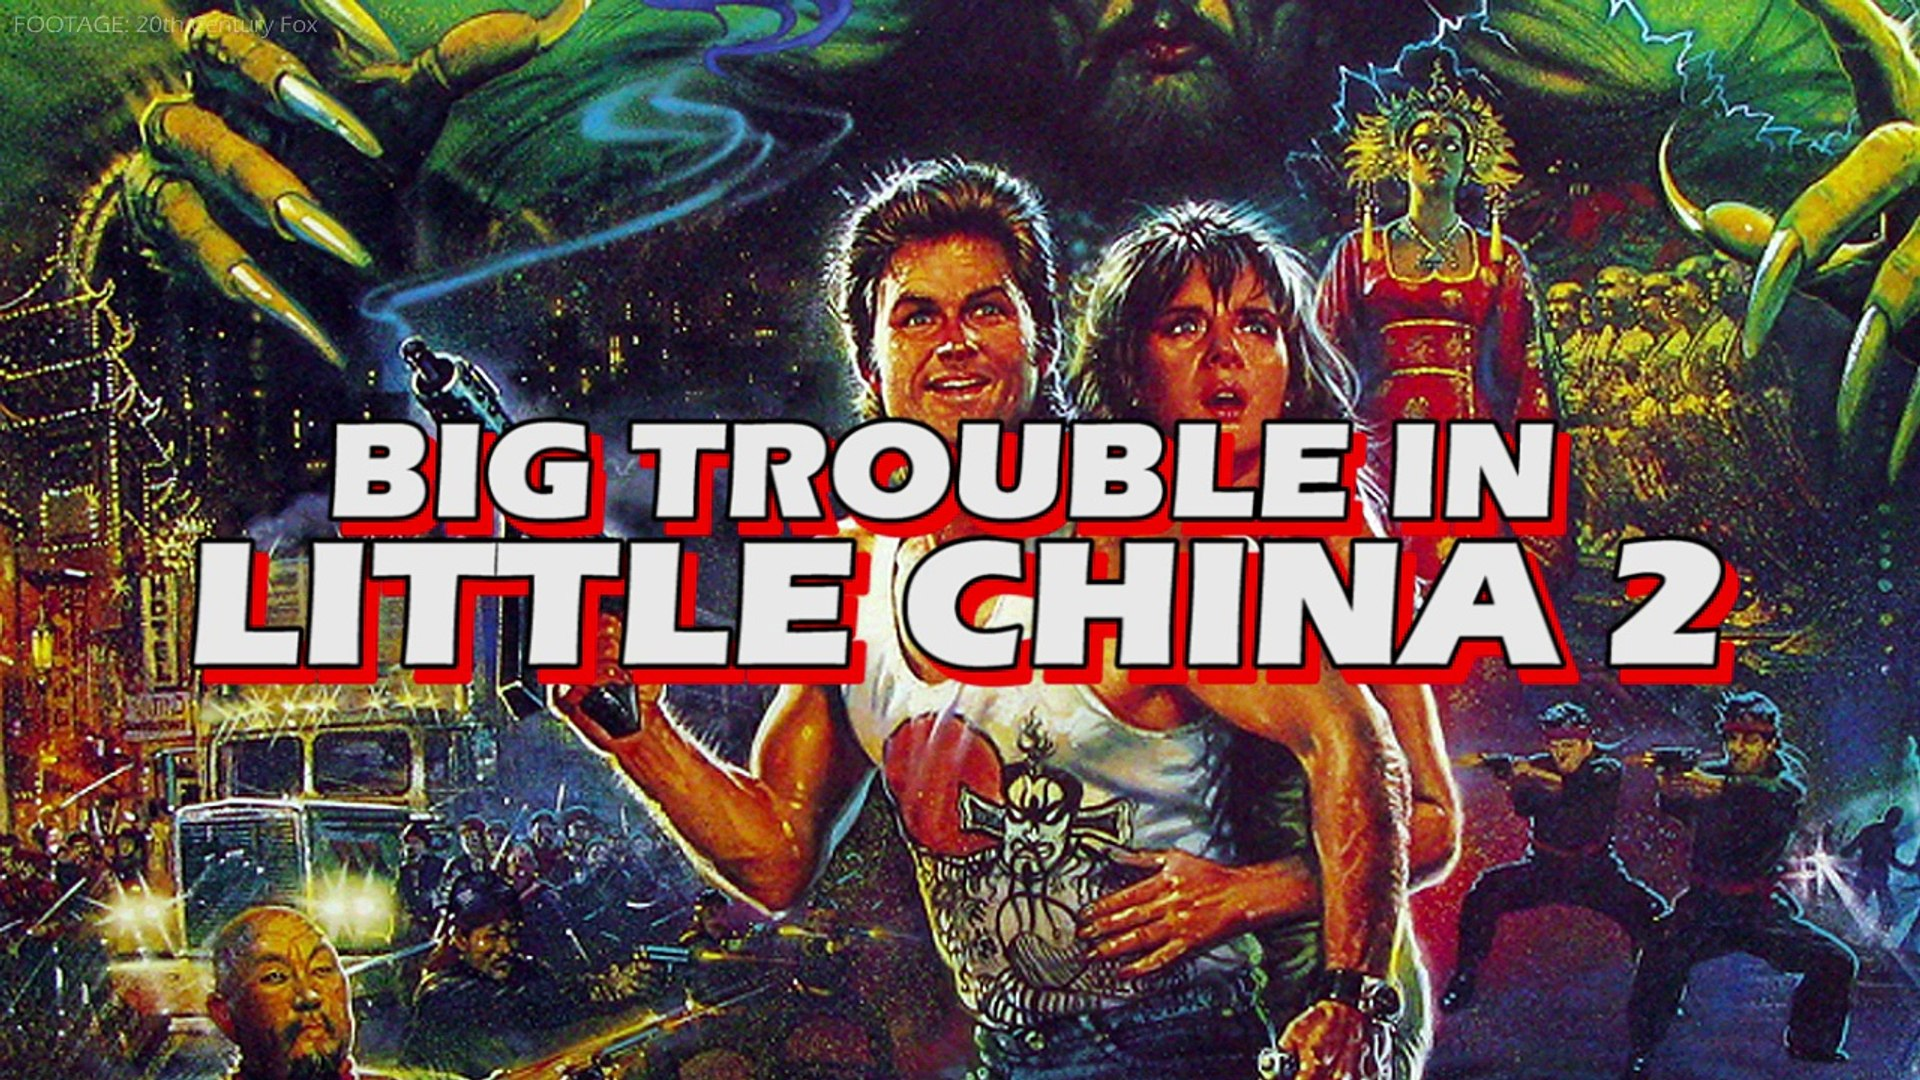 Forgotten Films Big Trouble In Little China 2 Video Dailymotion